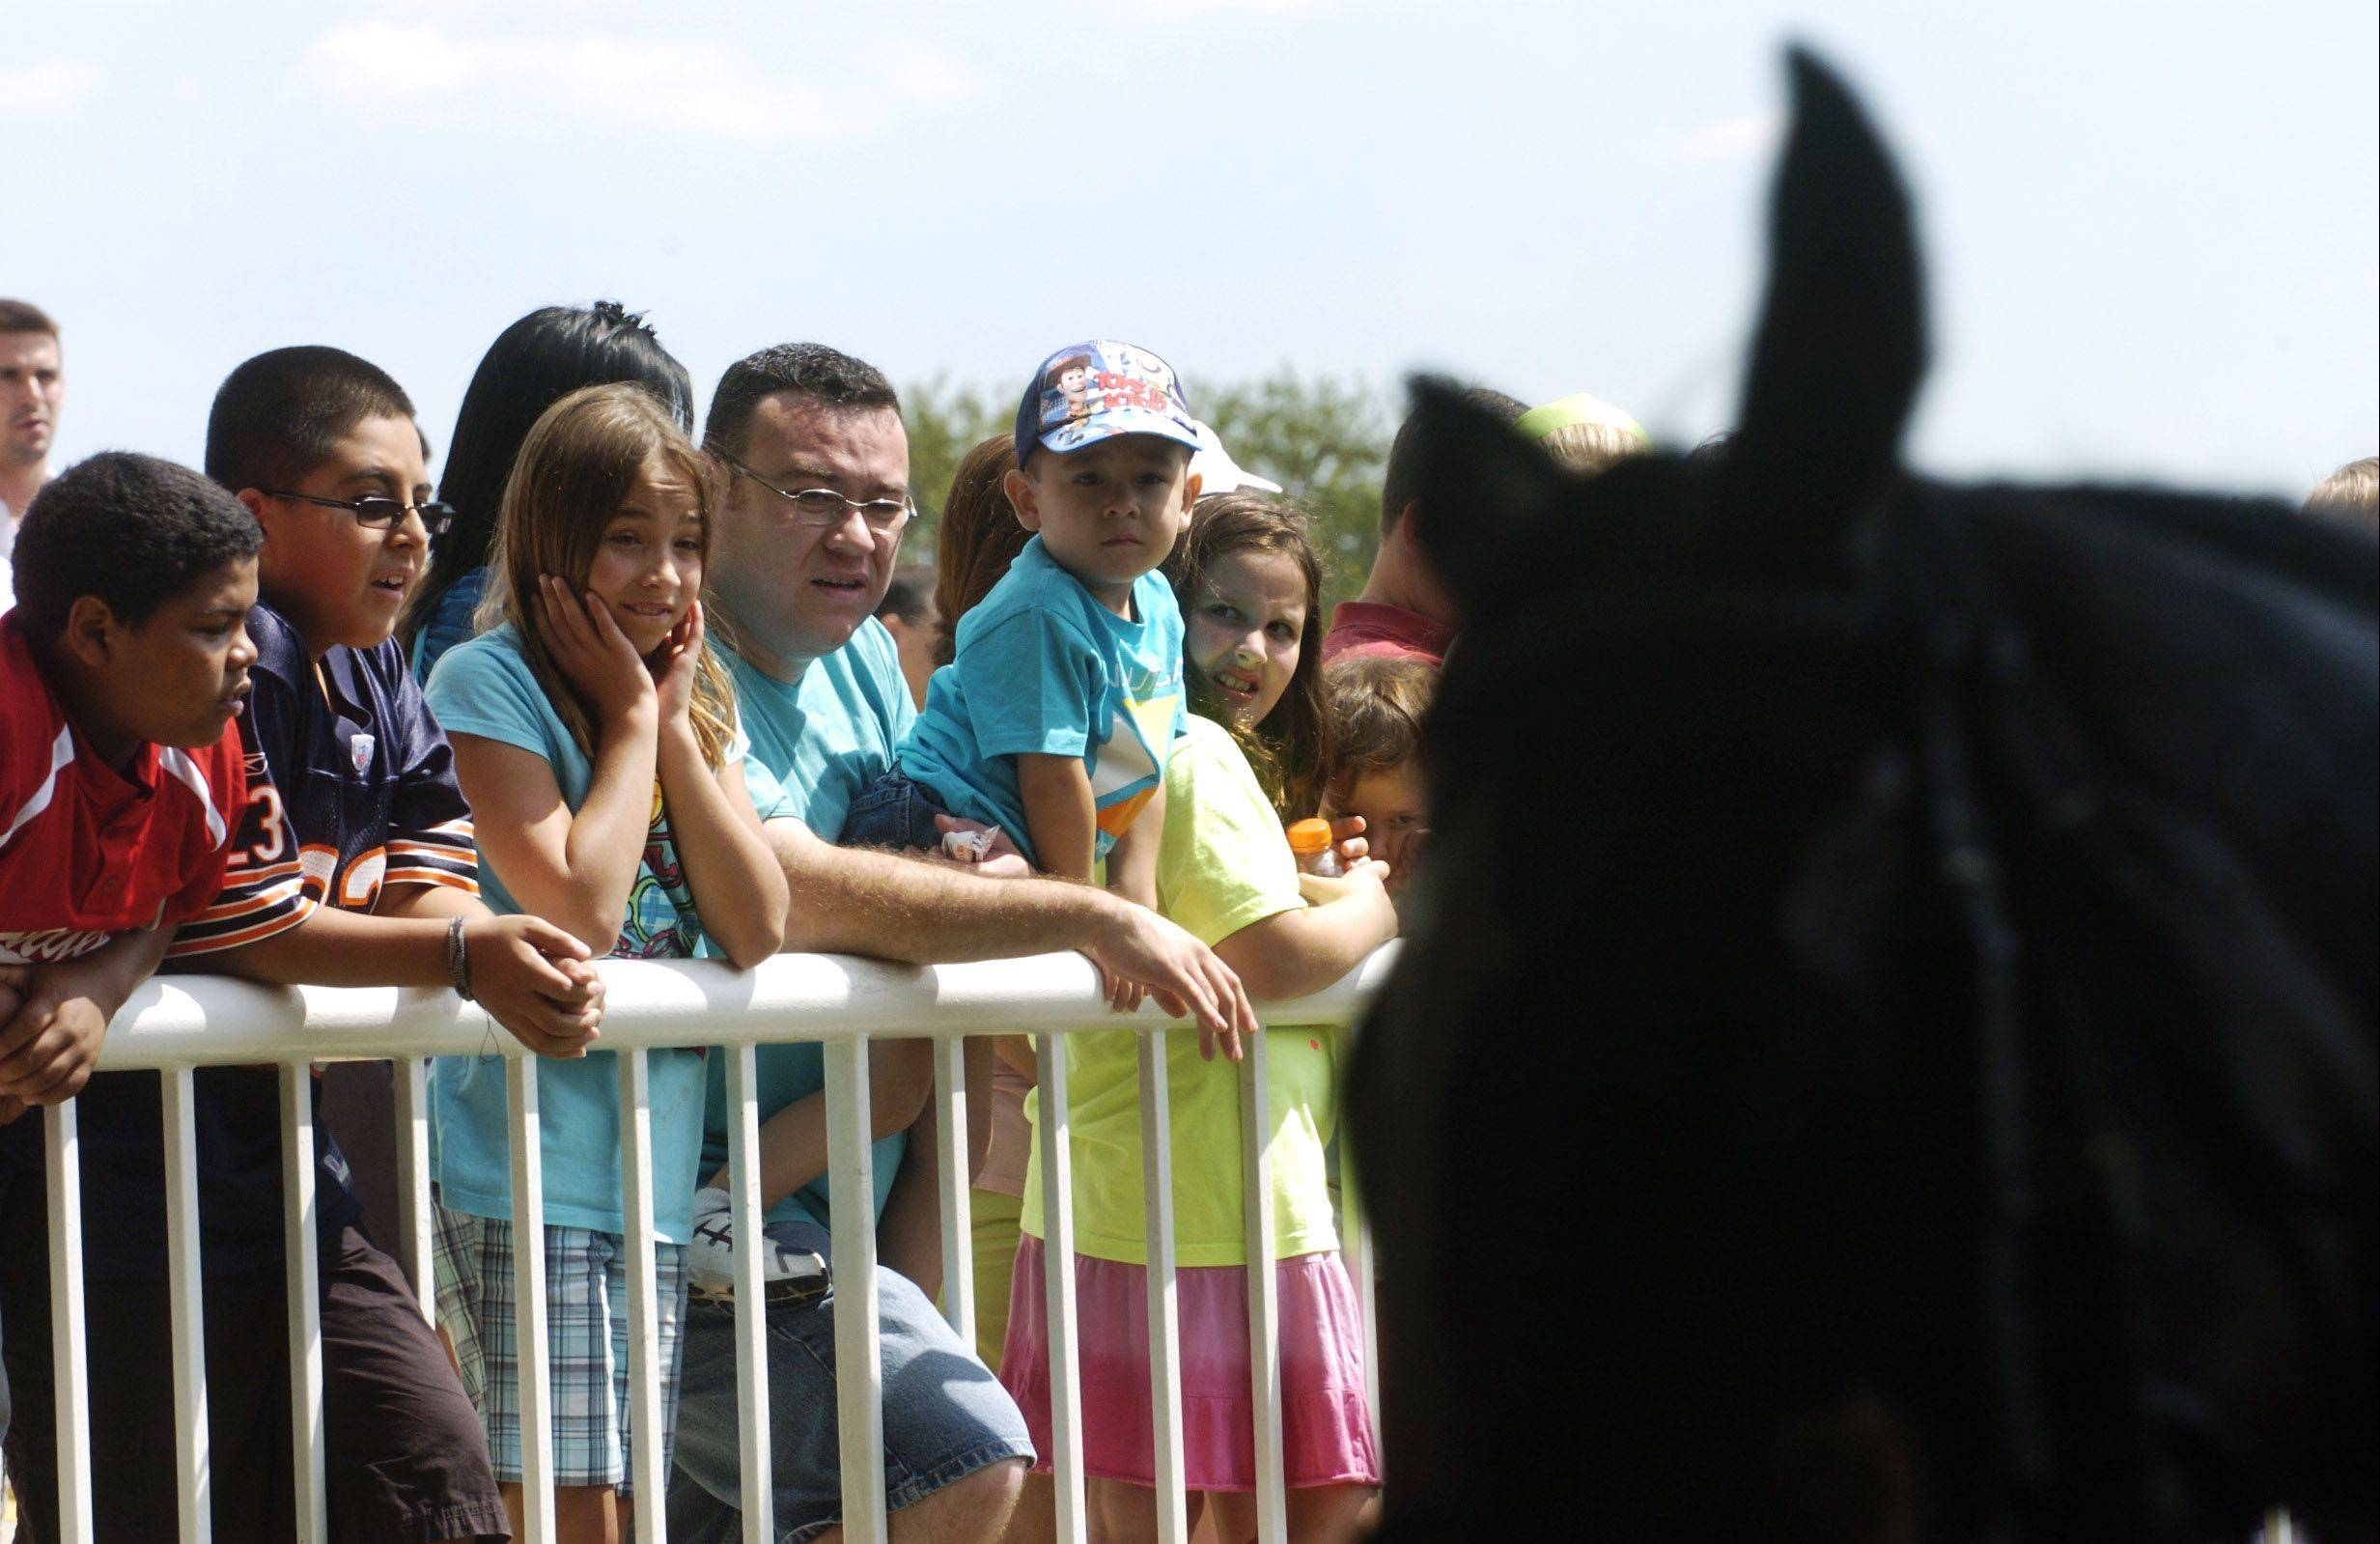 Fans get a good look at the racing talent during Million Day at Arlington Park on Saturday.